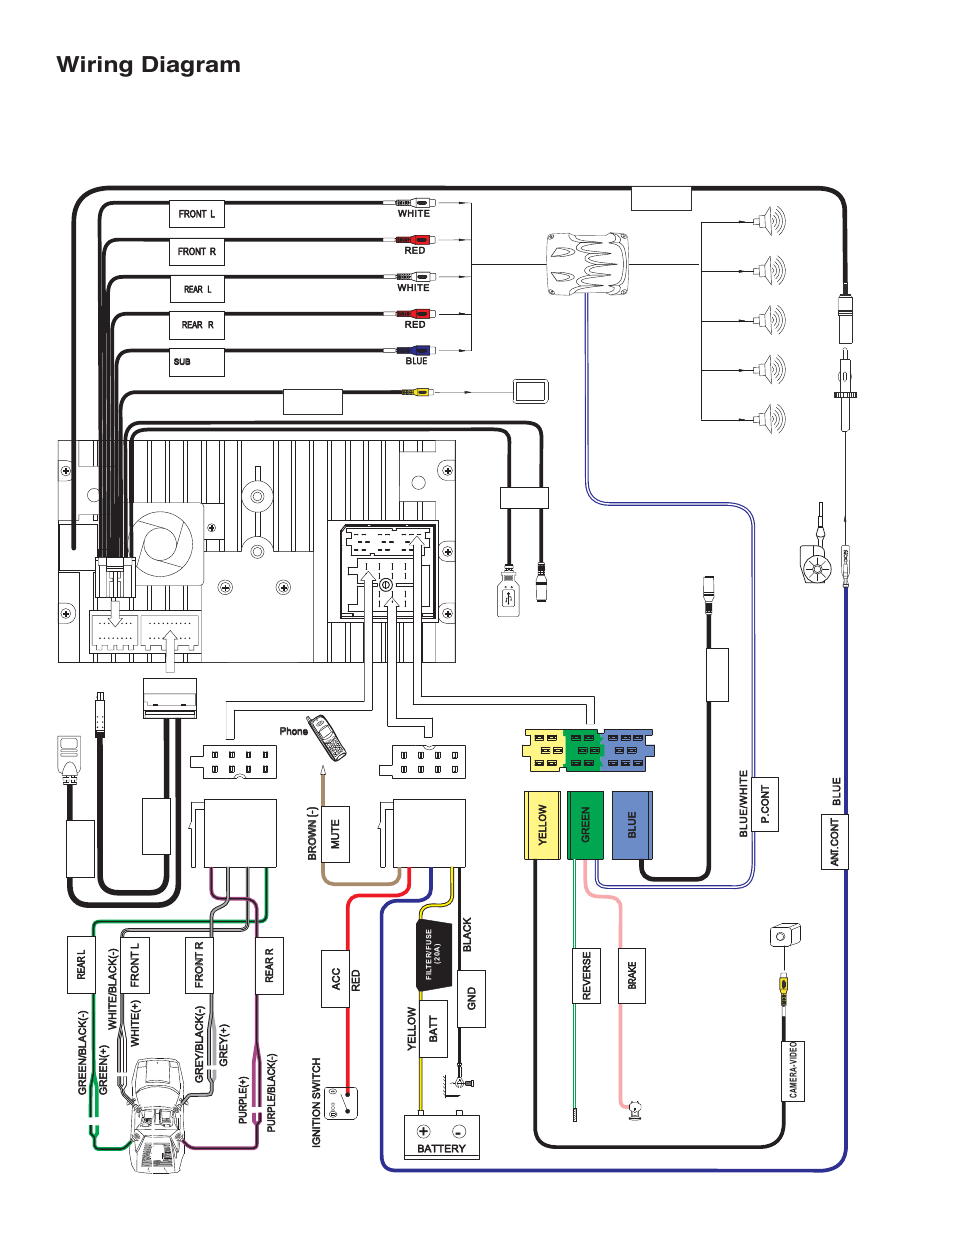 Omega Ib Pljx Wiring Diagram Data Trusted U2022 Rh Soulmatestyle Co 1985 C10 1963 Chevy